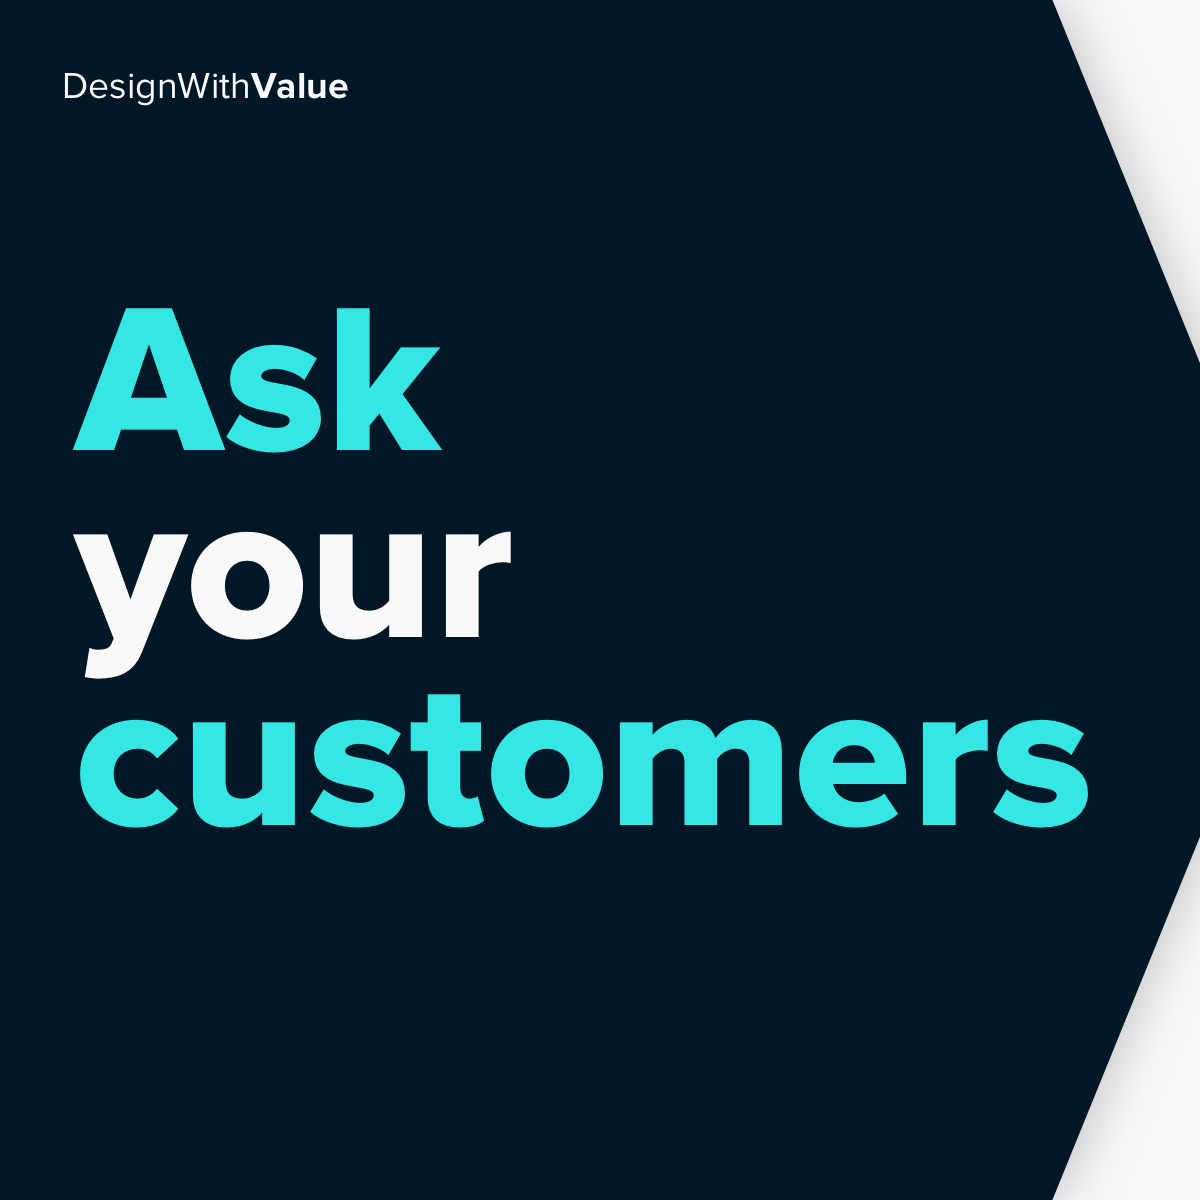 Ask your customers 2 questions.